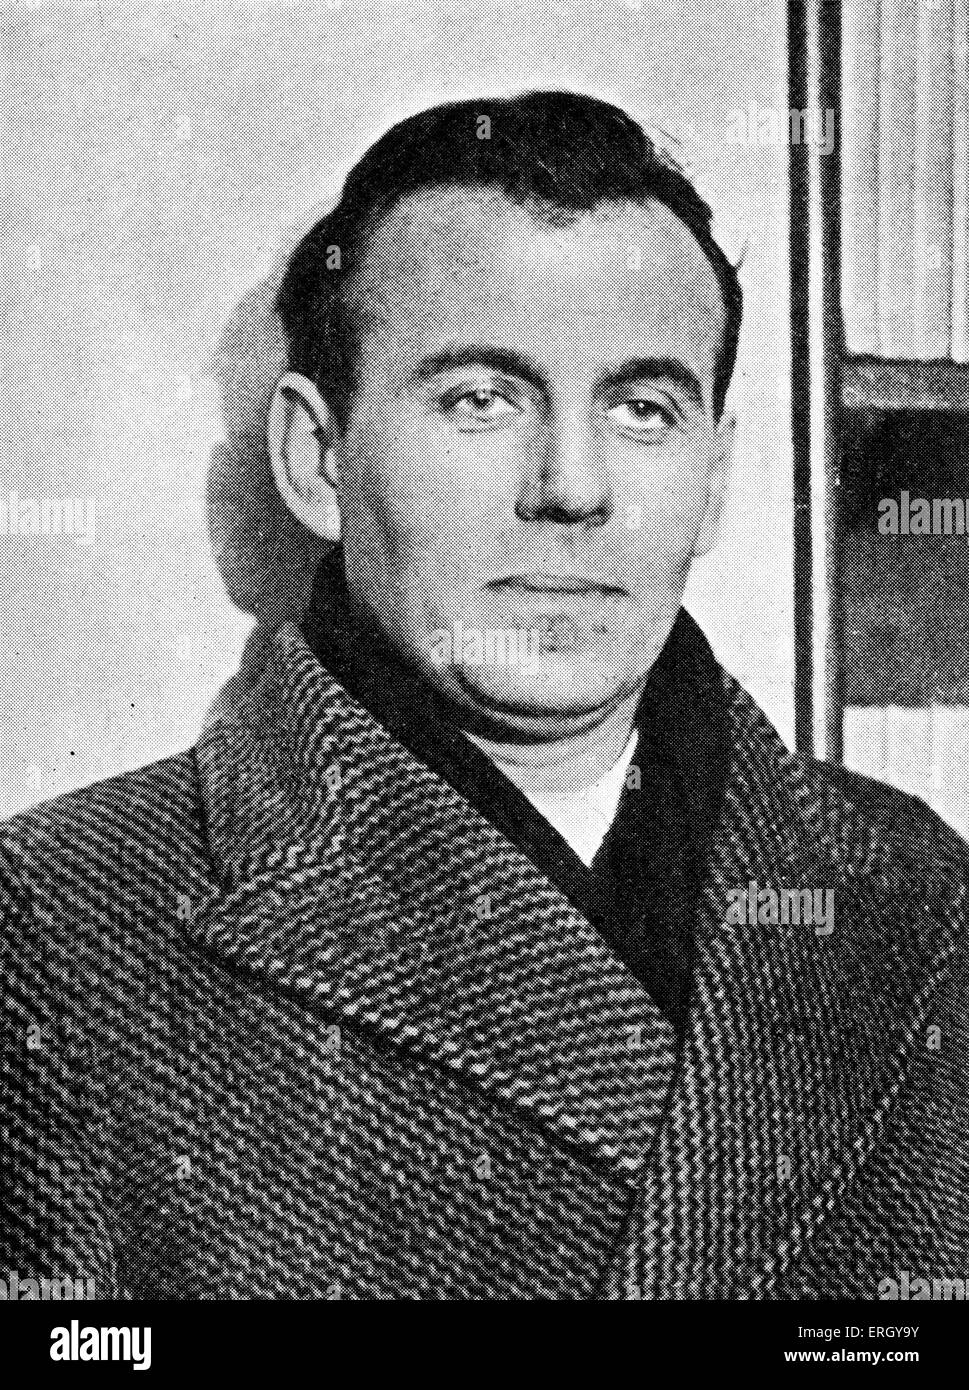 Louis-Ferdinand Céline on winning the Prix Renaudot for his novel Journey to the End of the Night, 1932. Louis - Stock Image